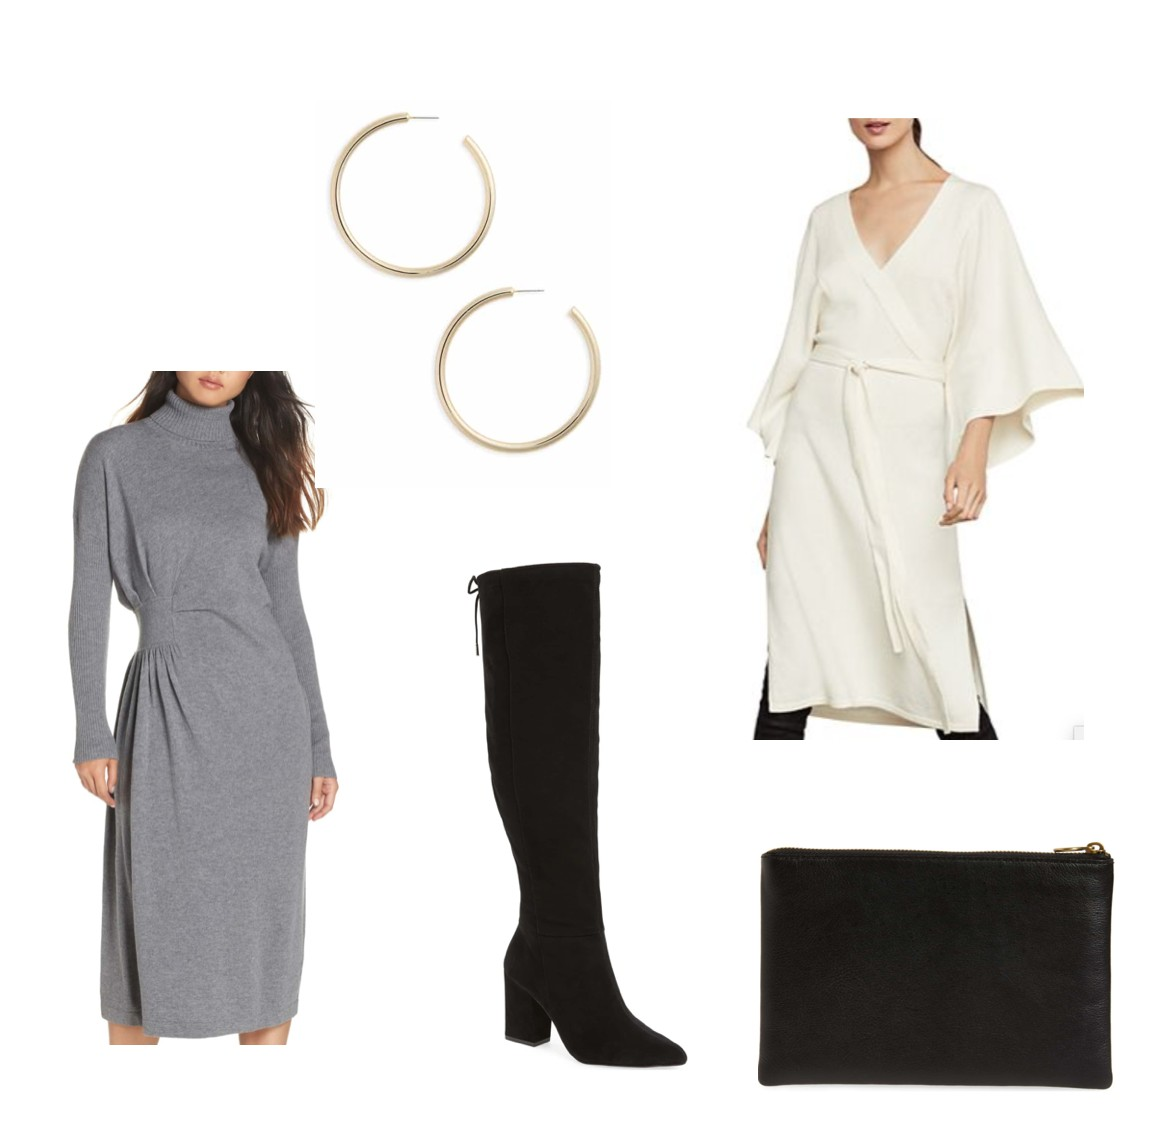 b67814b37fa Formal Thanksgiving  Go for something modern and super chic! I would  suggest an elegant maxi dress or a silk pajama inspired suit paired with  heels and ...